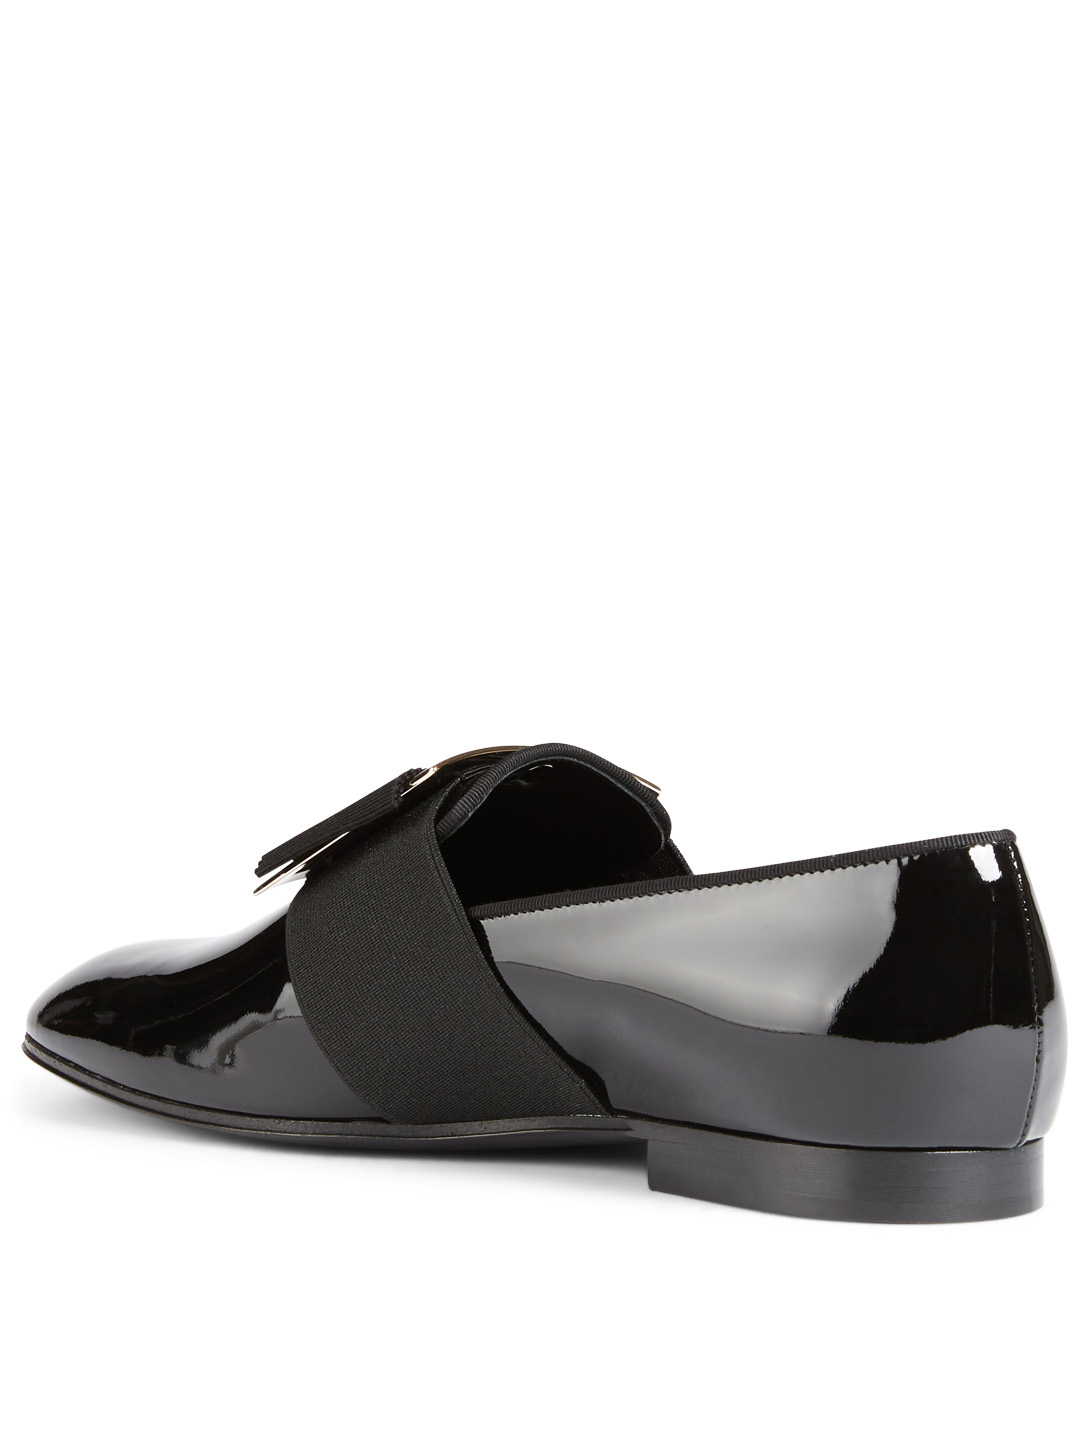 ROGER VIVIER Patent Leather Loafers Womens Black